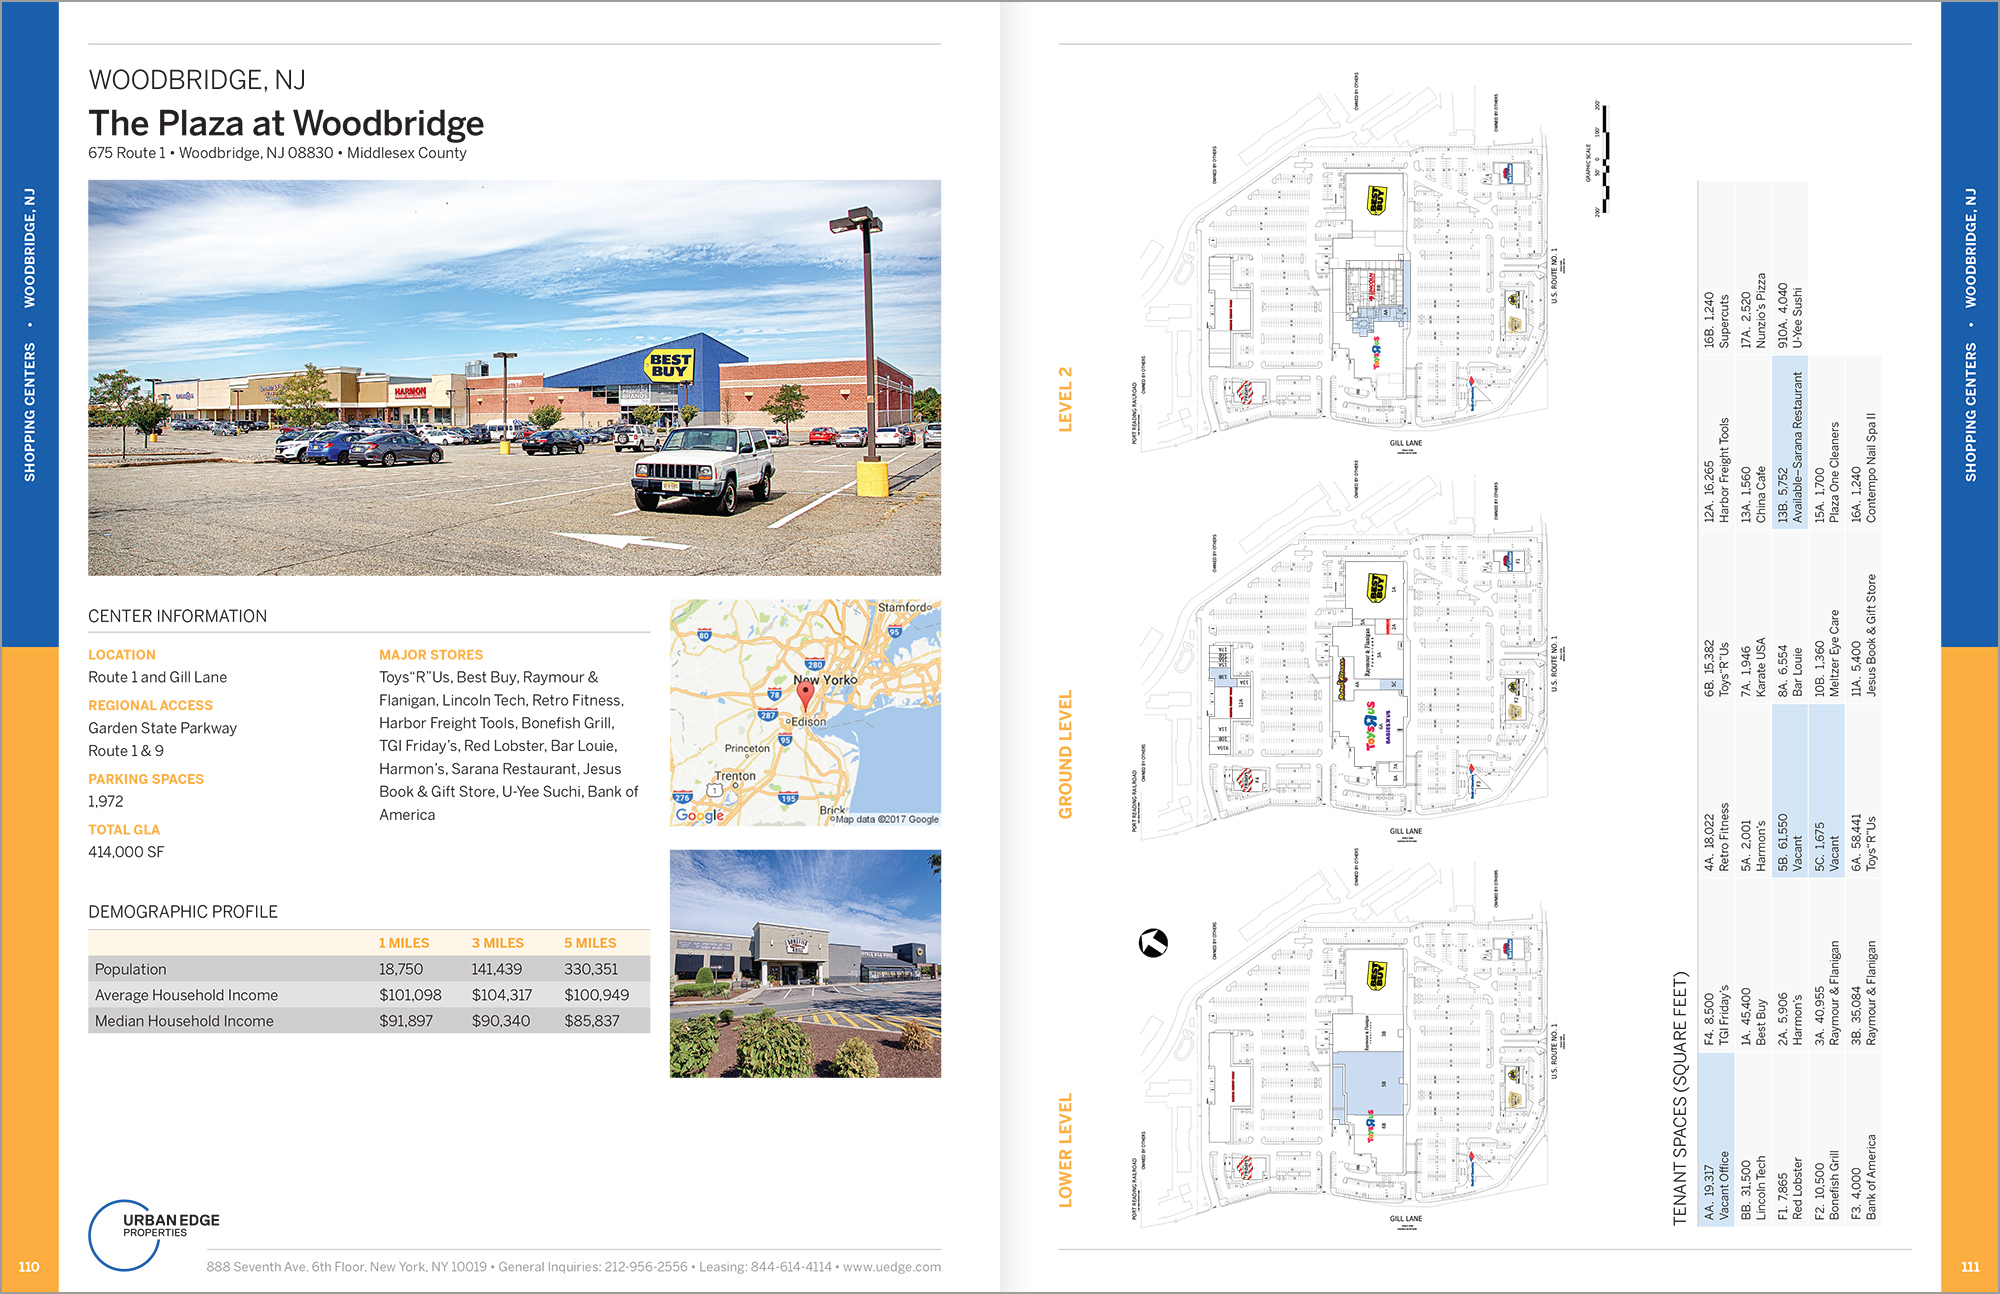 Sample page spread from the Urban Edge Properties Leasing Book